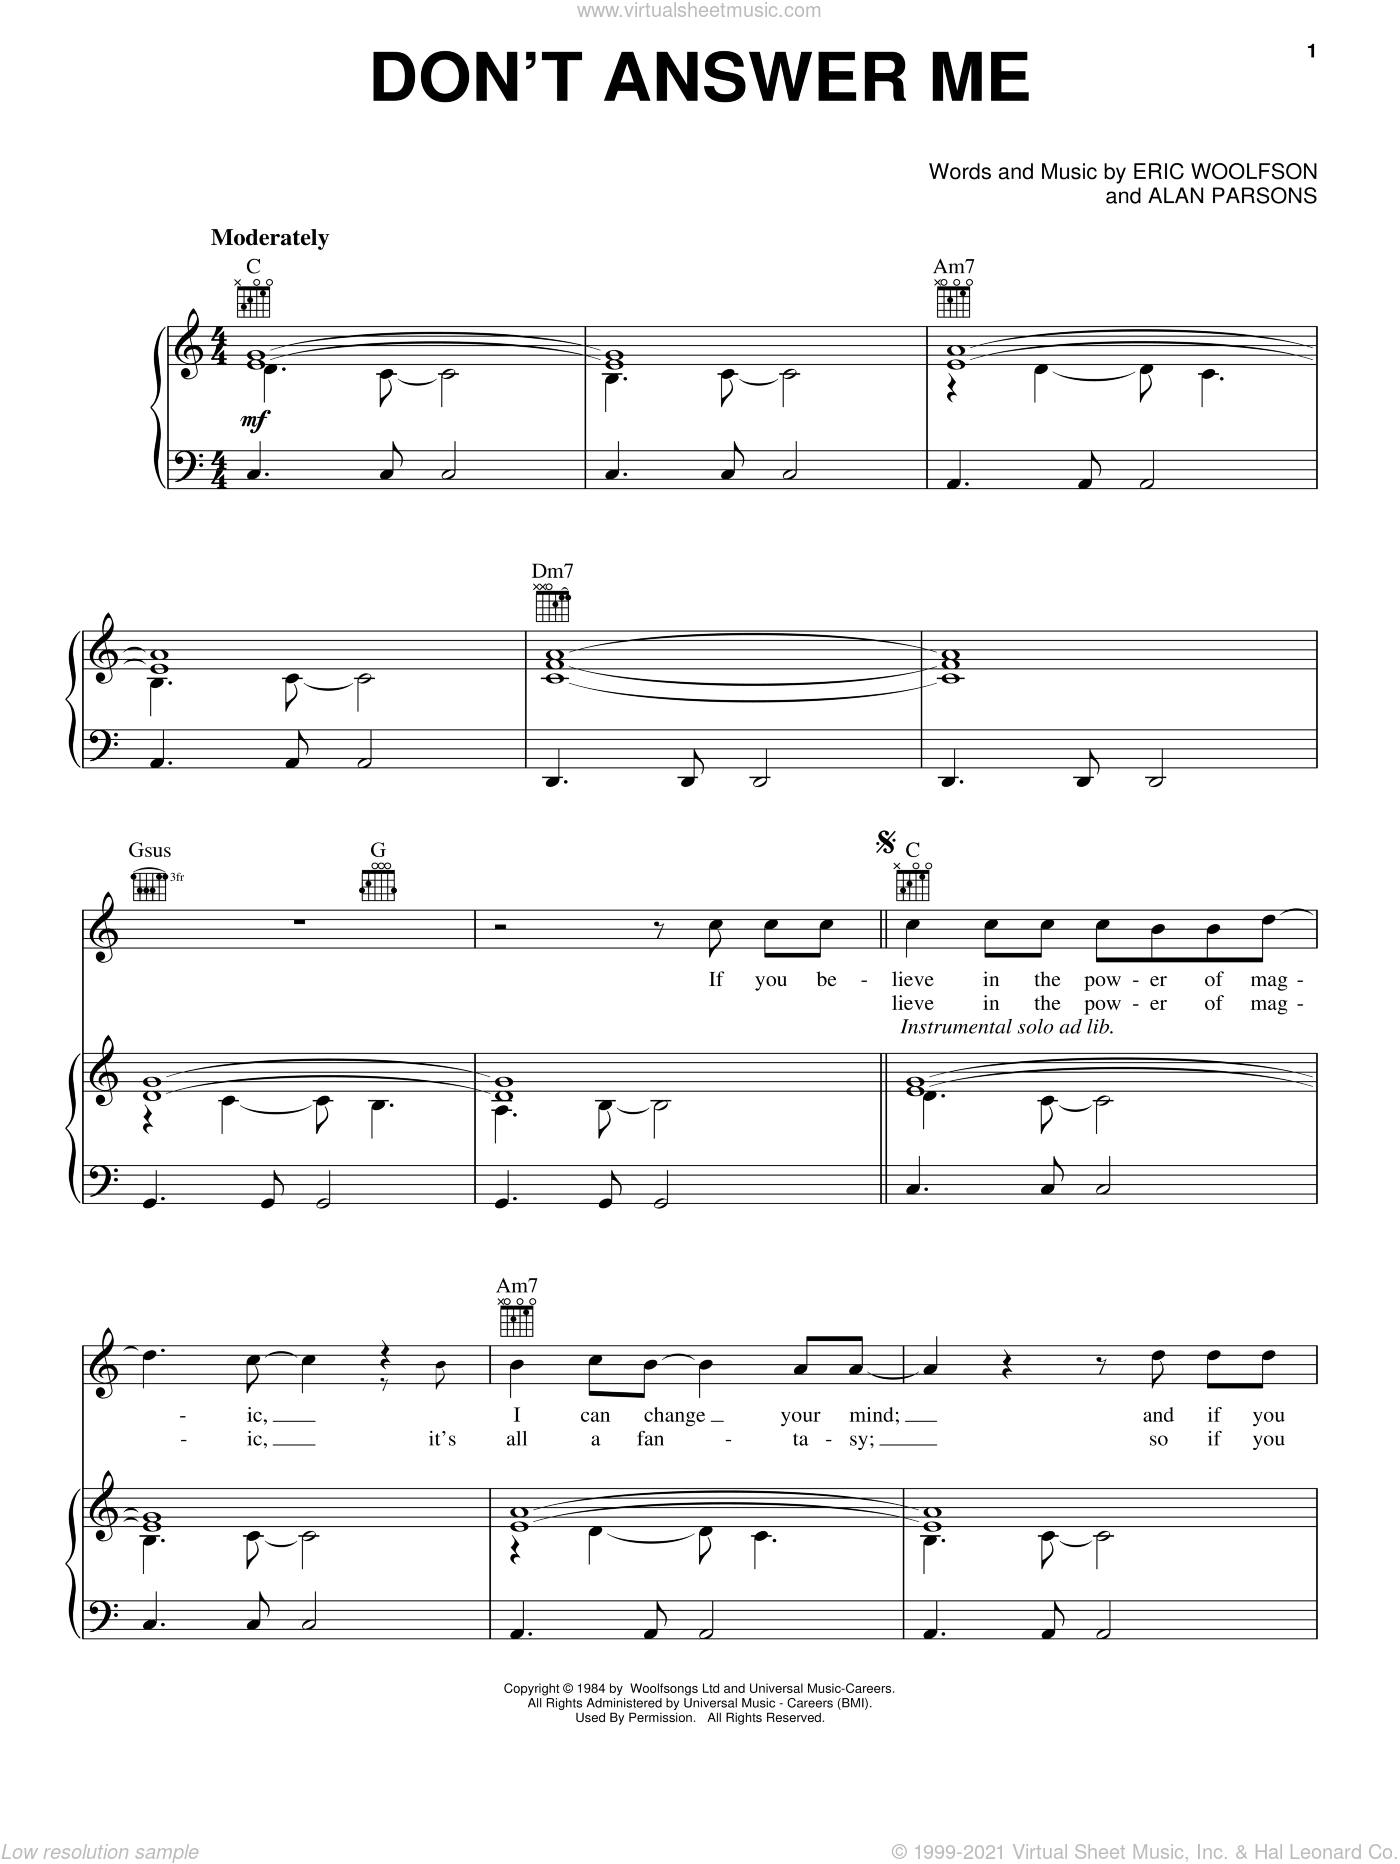 Don't Answer Me sheet music for voice, piano or guitar by Eric Woolfson